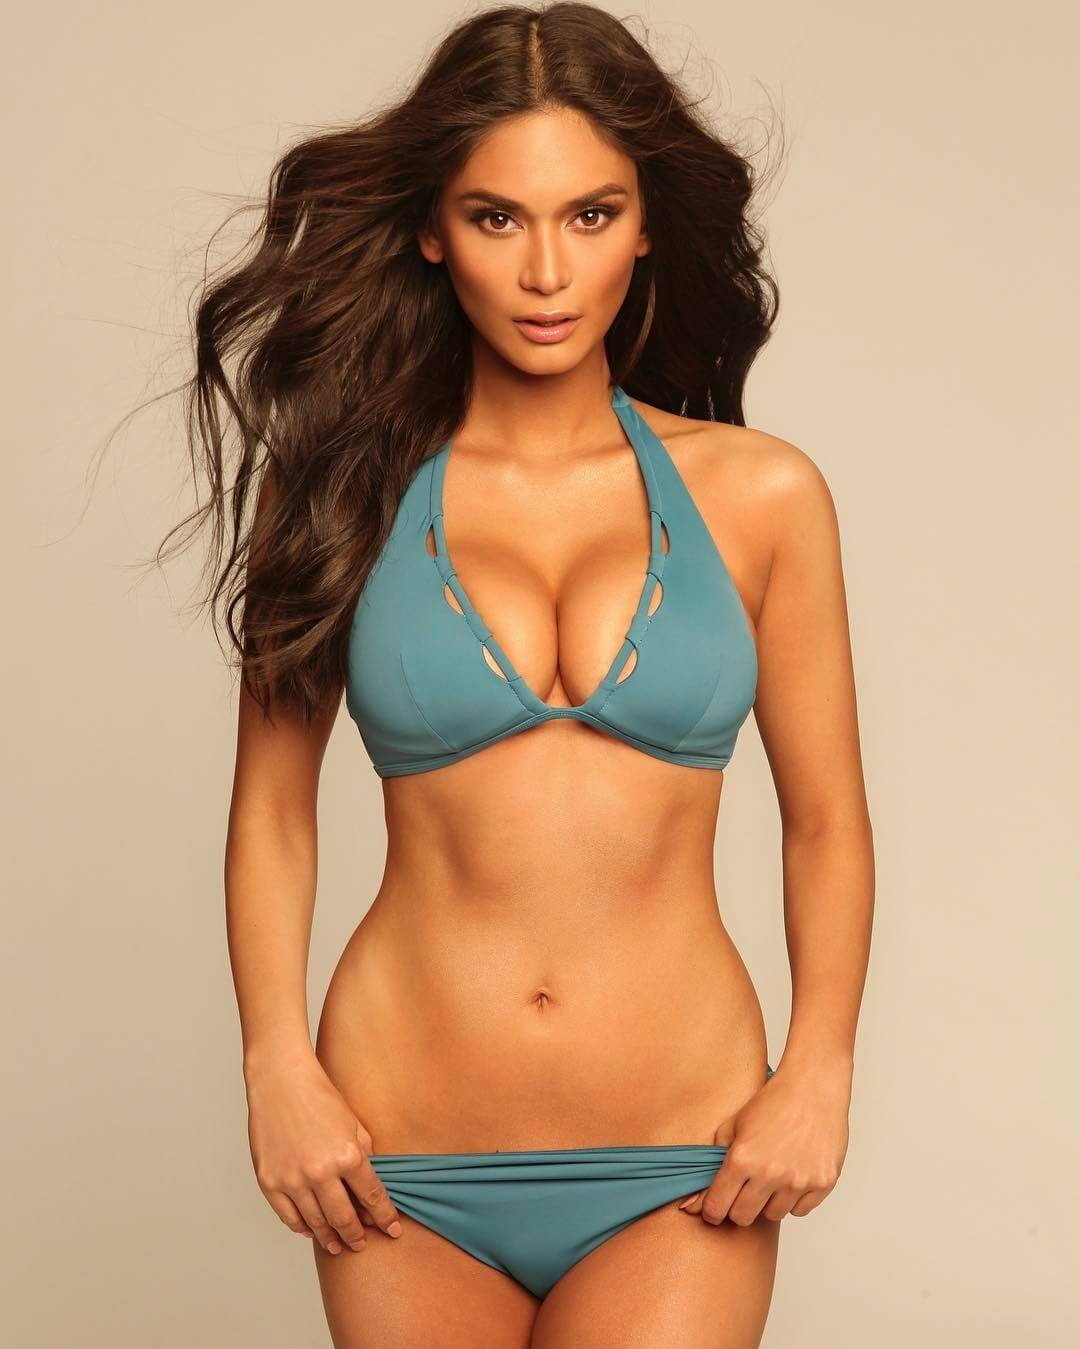 49 Hot Pictures Of Pia Wurtzbach Which Will Make You